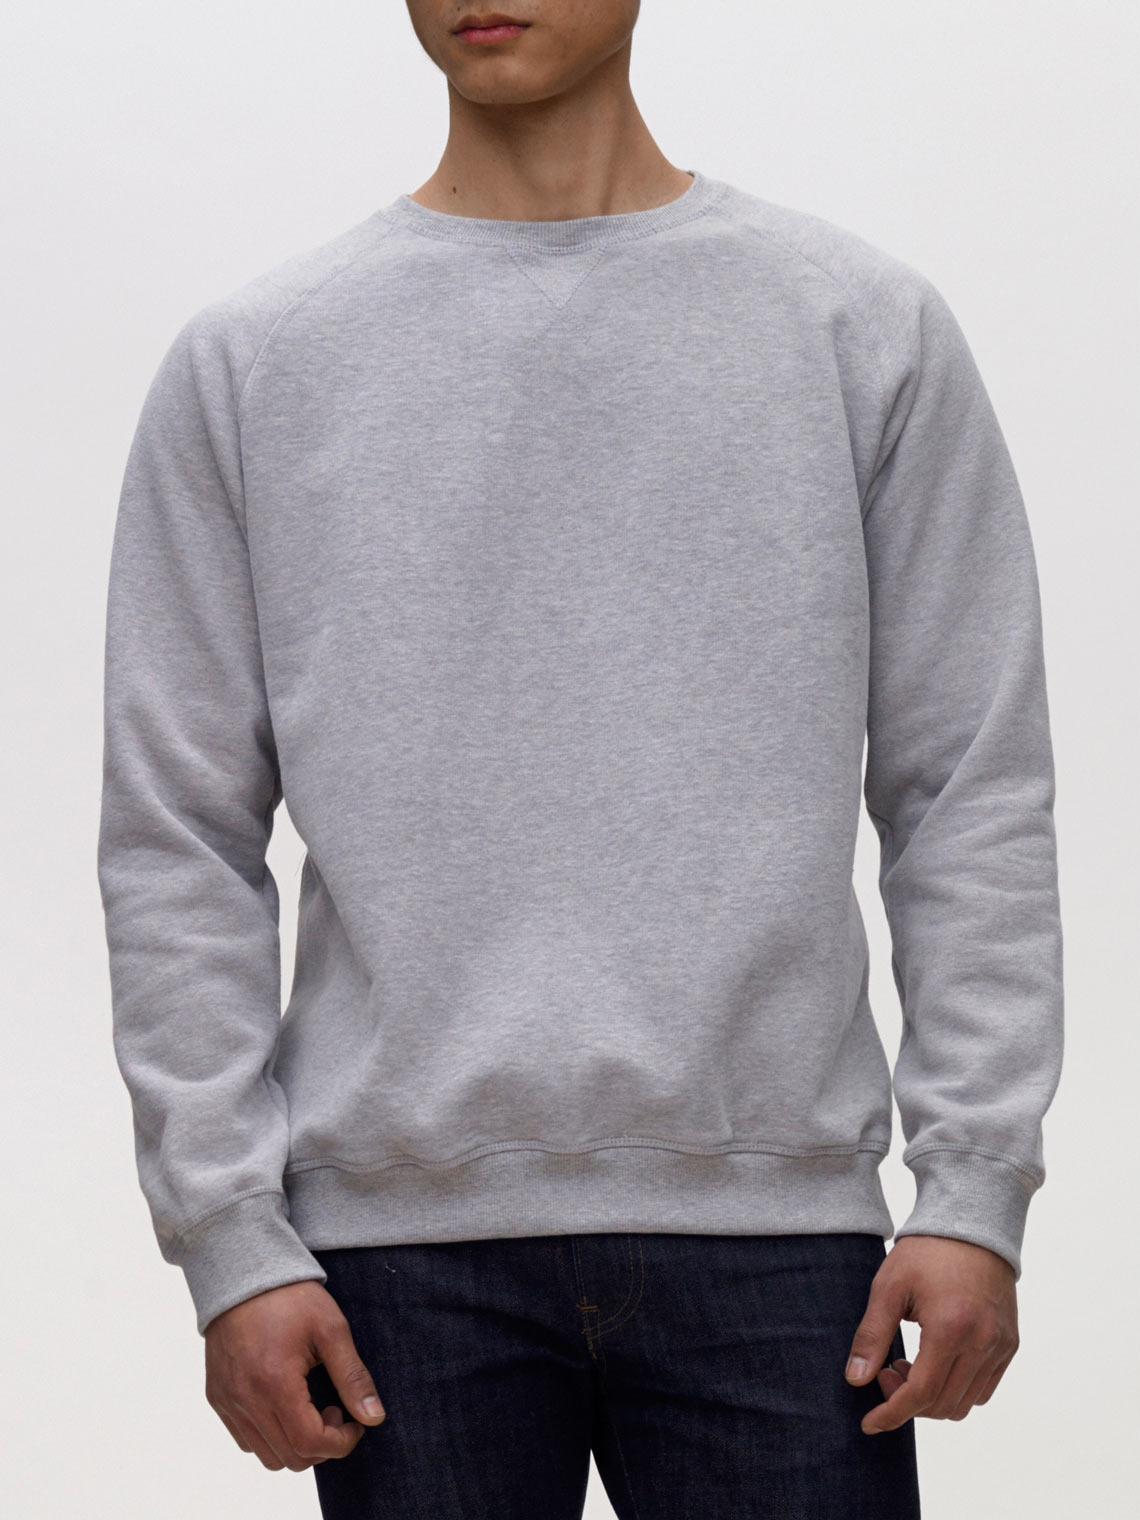 Product Shot of the The Sweatshirt in Heather Grey